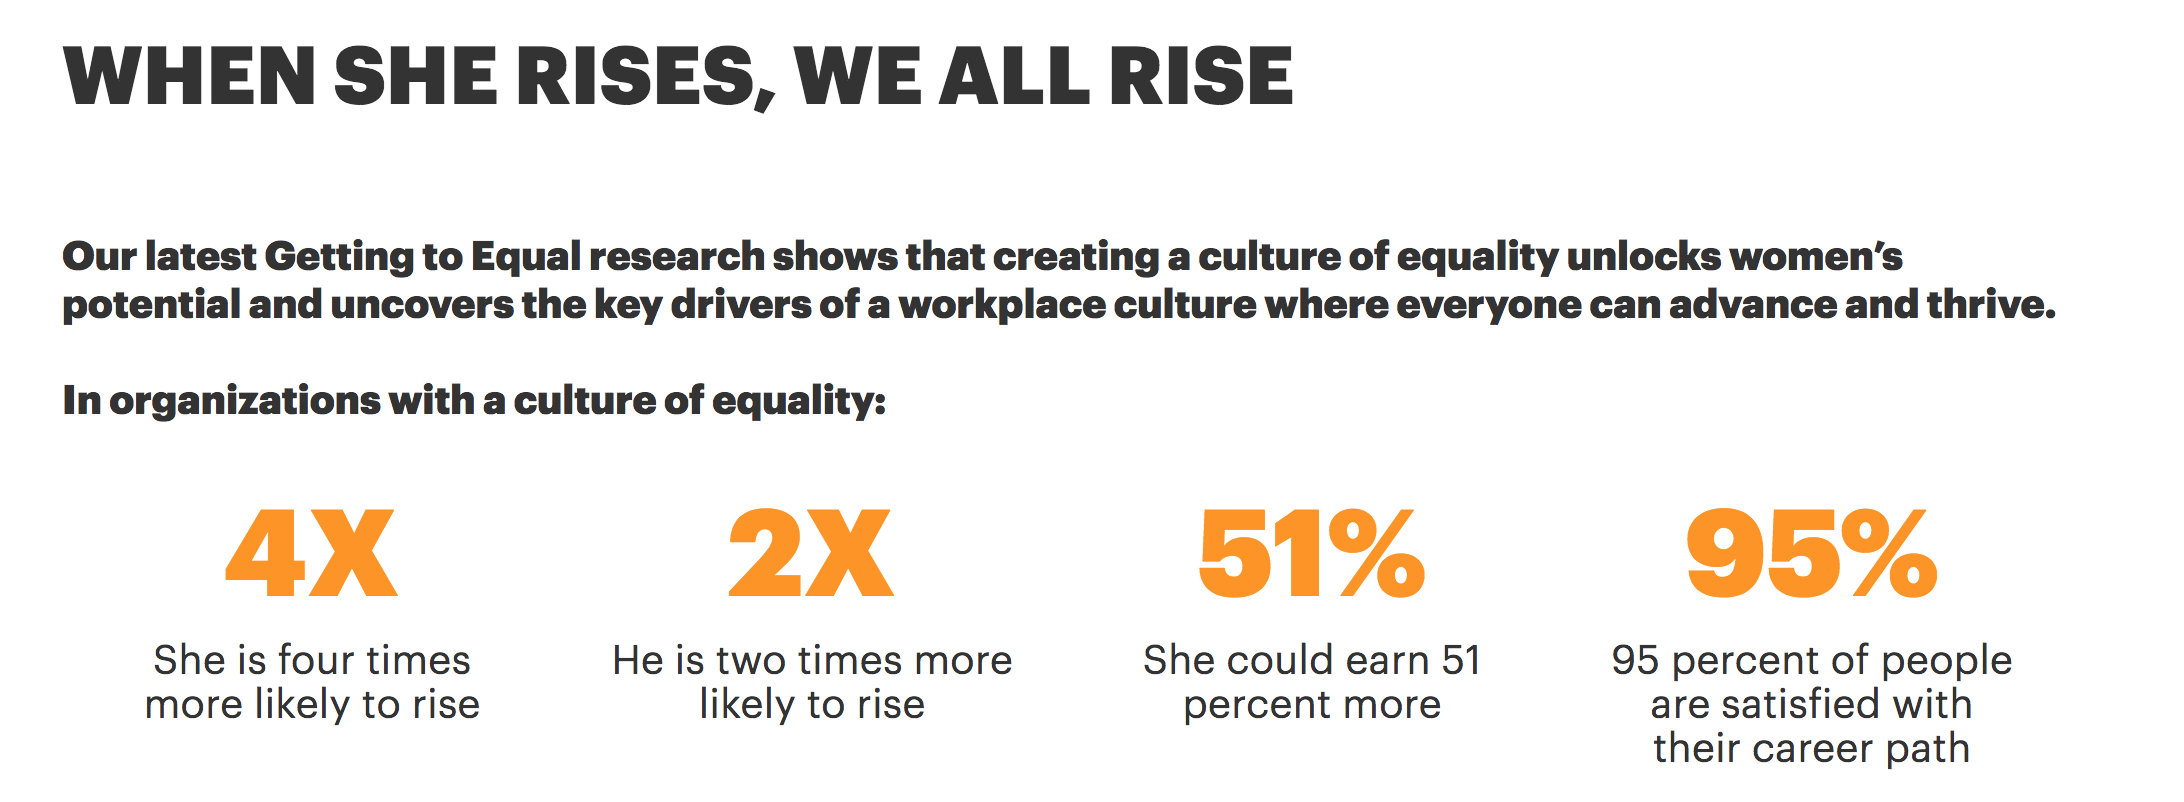 Image from: https://www.accenture.com/us-en/gender-equality-research